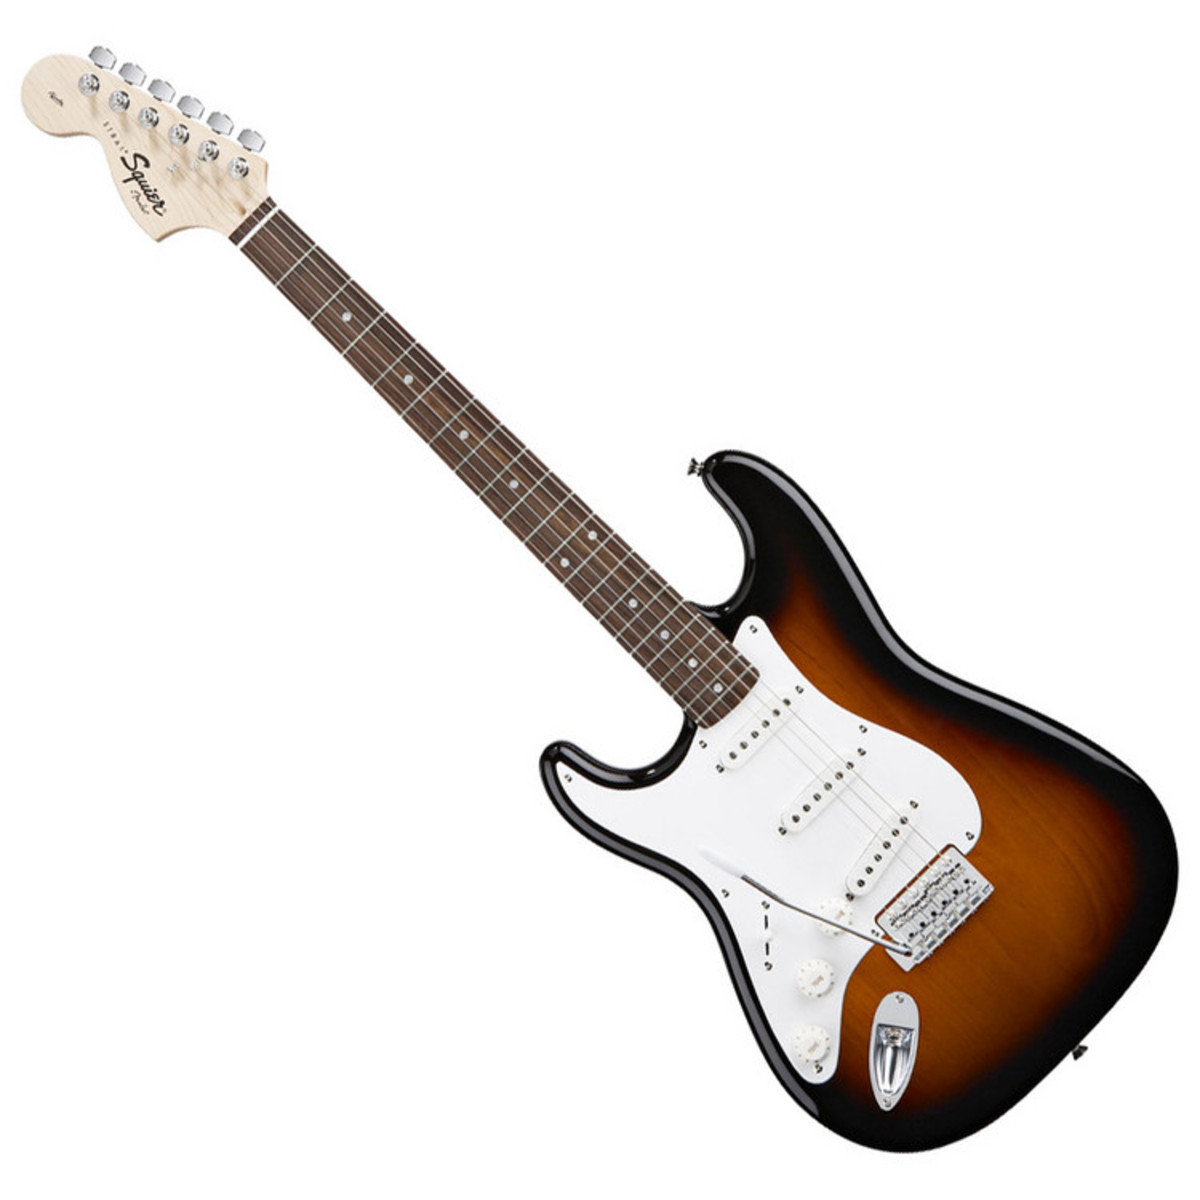 squier affinity strat l h mn brown sunburst nearly new at gear4music. Black Bedroom Furniture Sets. Home Design Ideas